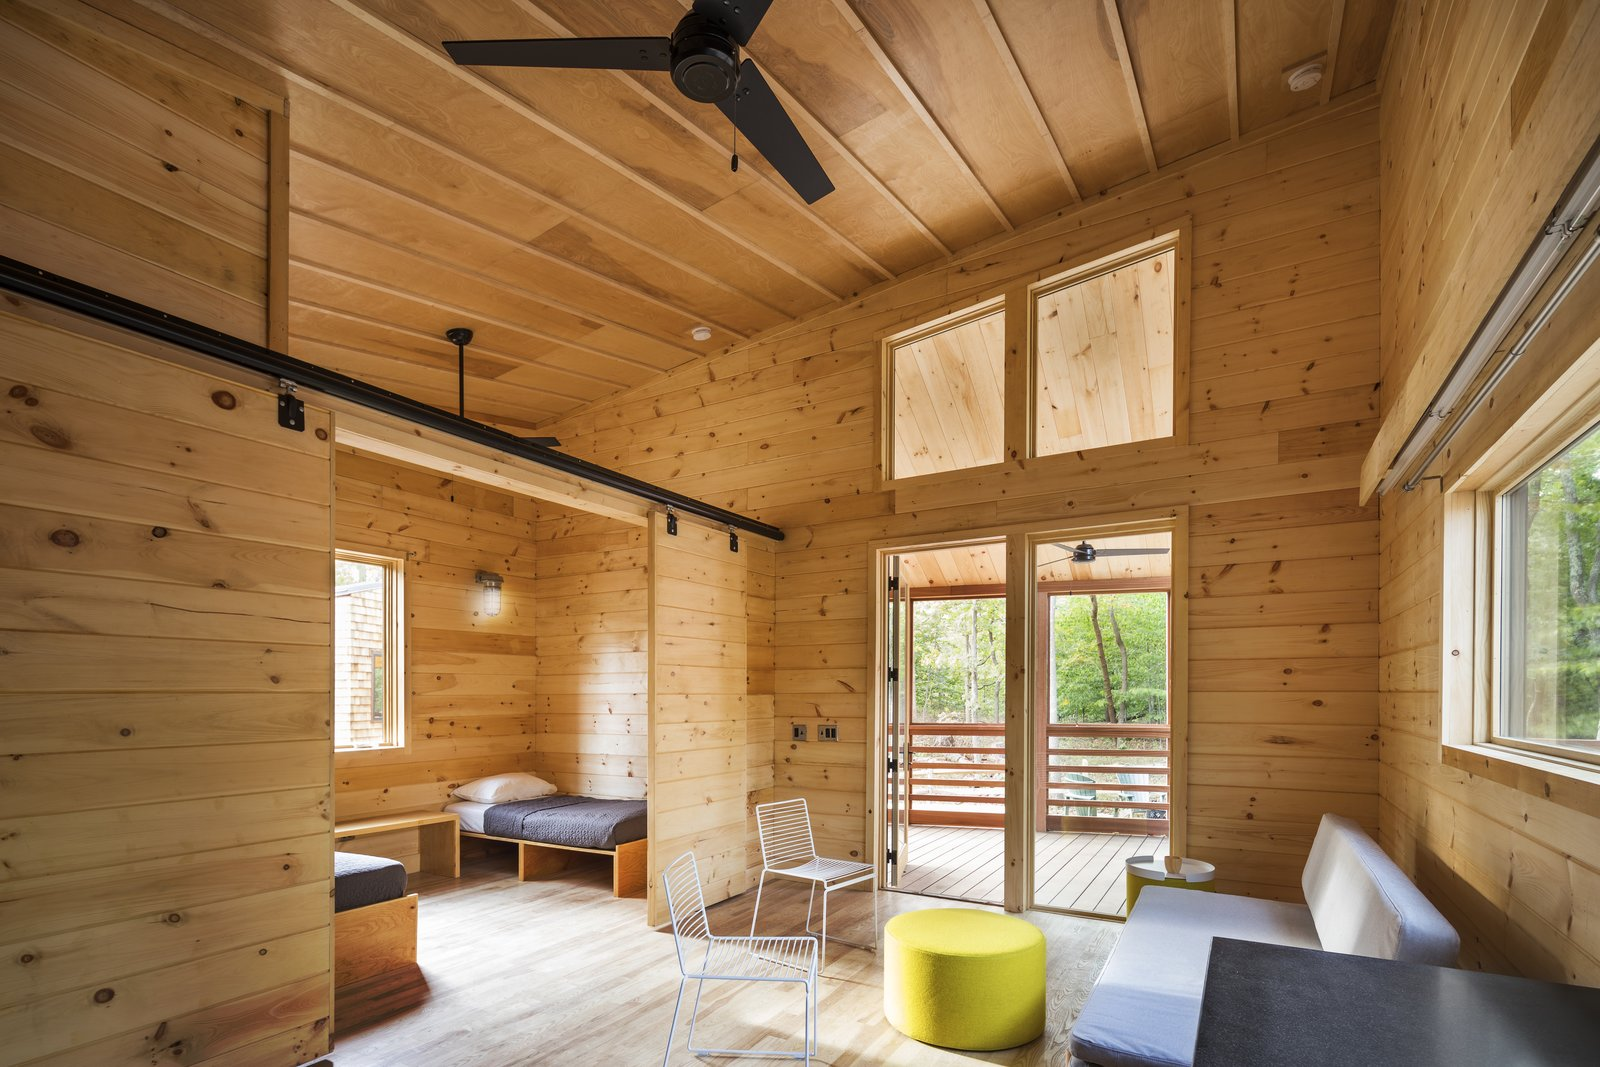 Living Room, Sofa, Ottomans, Light Hardwood Floor, and Chair  Photo 5 of 7 in A Long Island Campground Gets a Bunch of New Modern Cabins